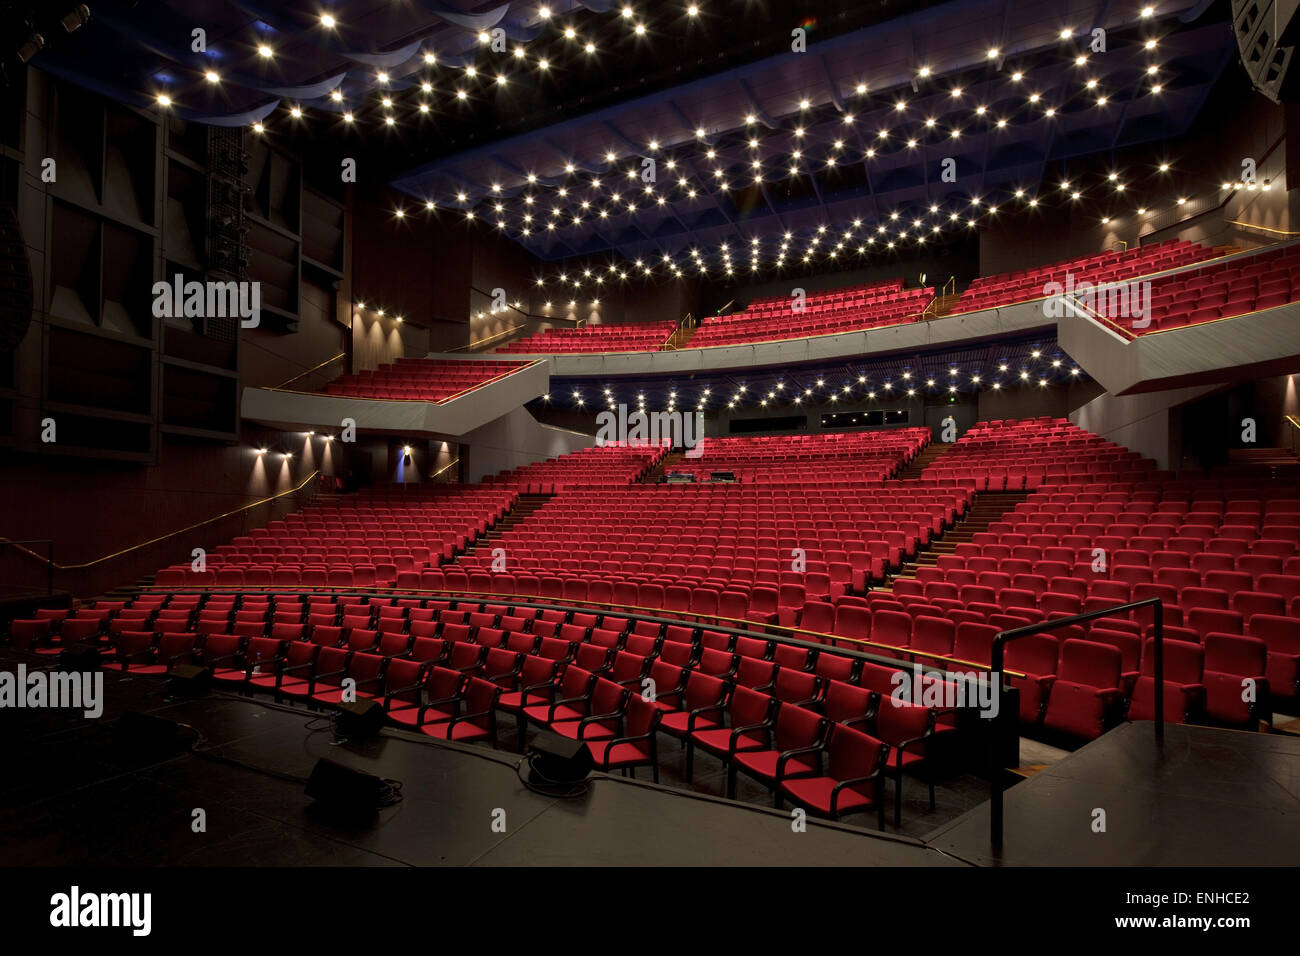 Oblique view of The Great Hall. Aarhus Concert Hall, Aarhus, Denmark. Architect: C F Moller Architects, 2007. - Stock Image